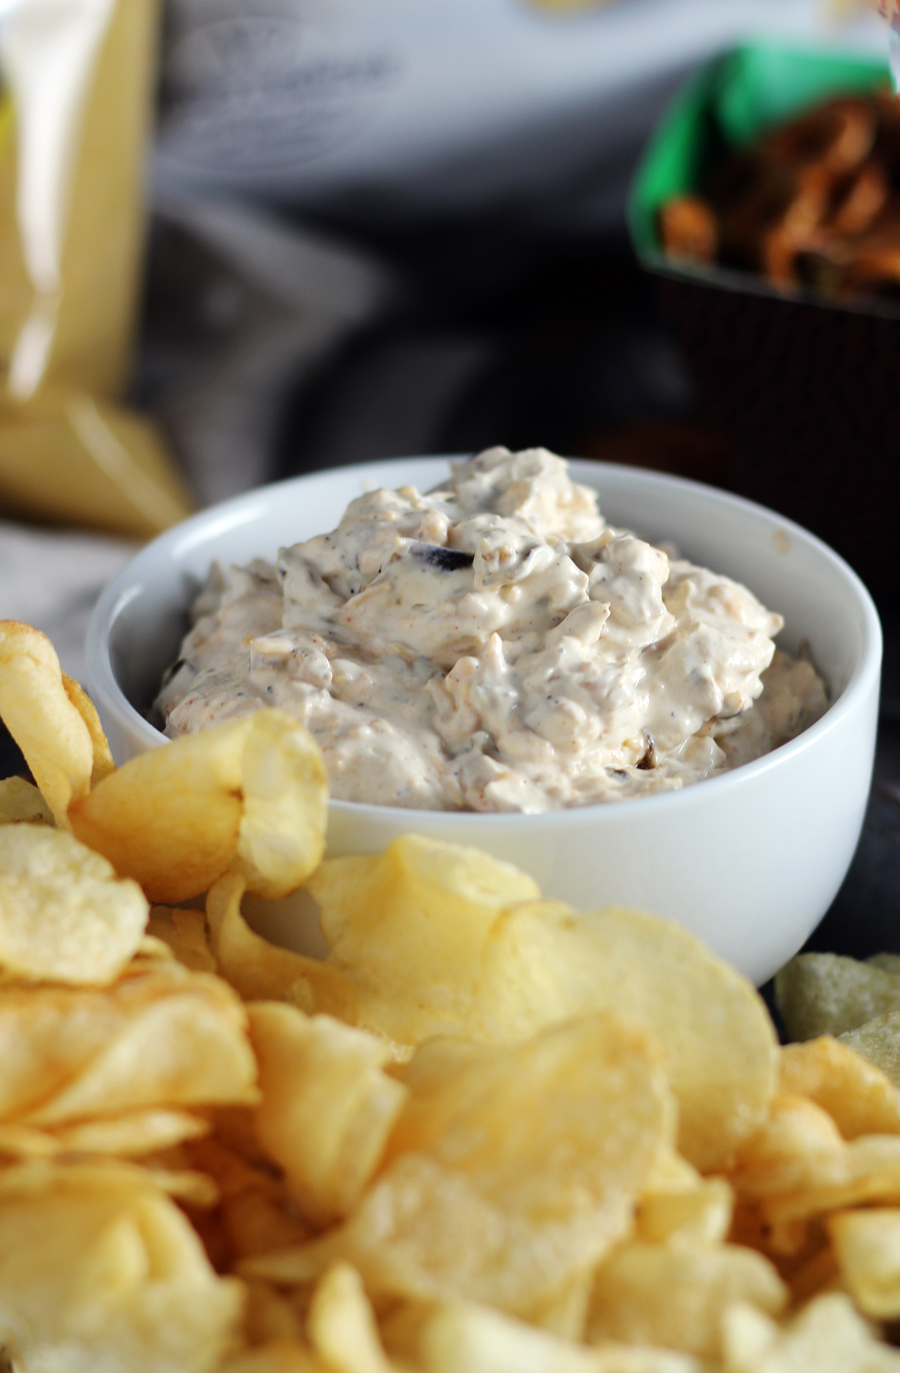 A bowl of sour cream + cheddar French onion dip next to kettle cooked potato chips